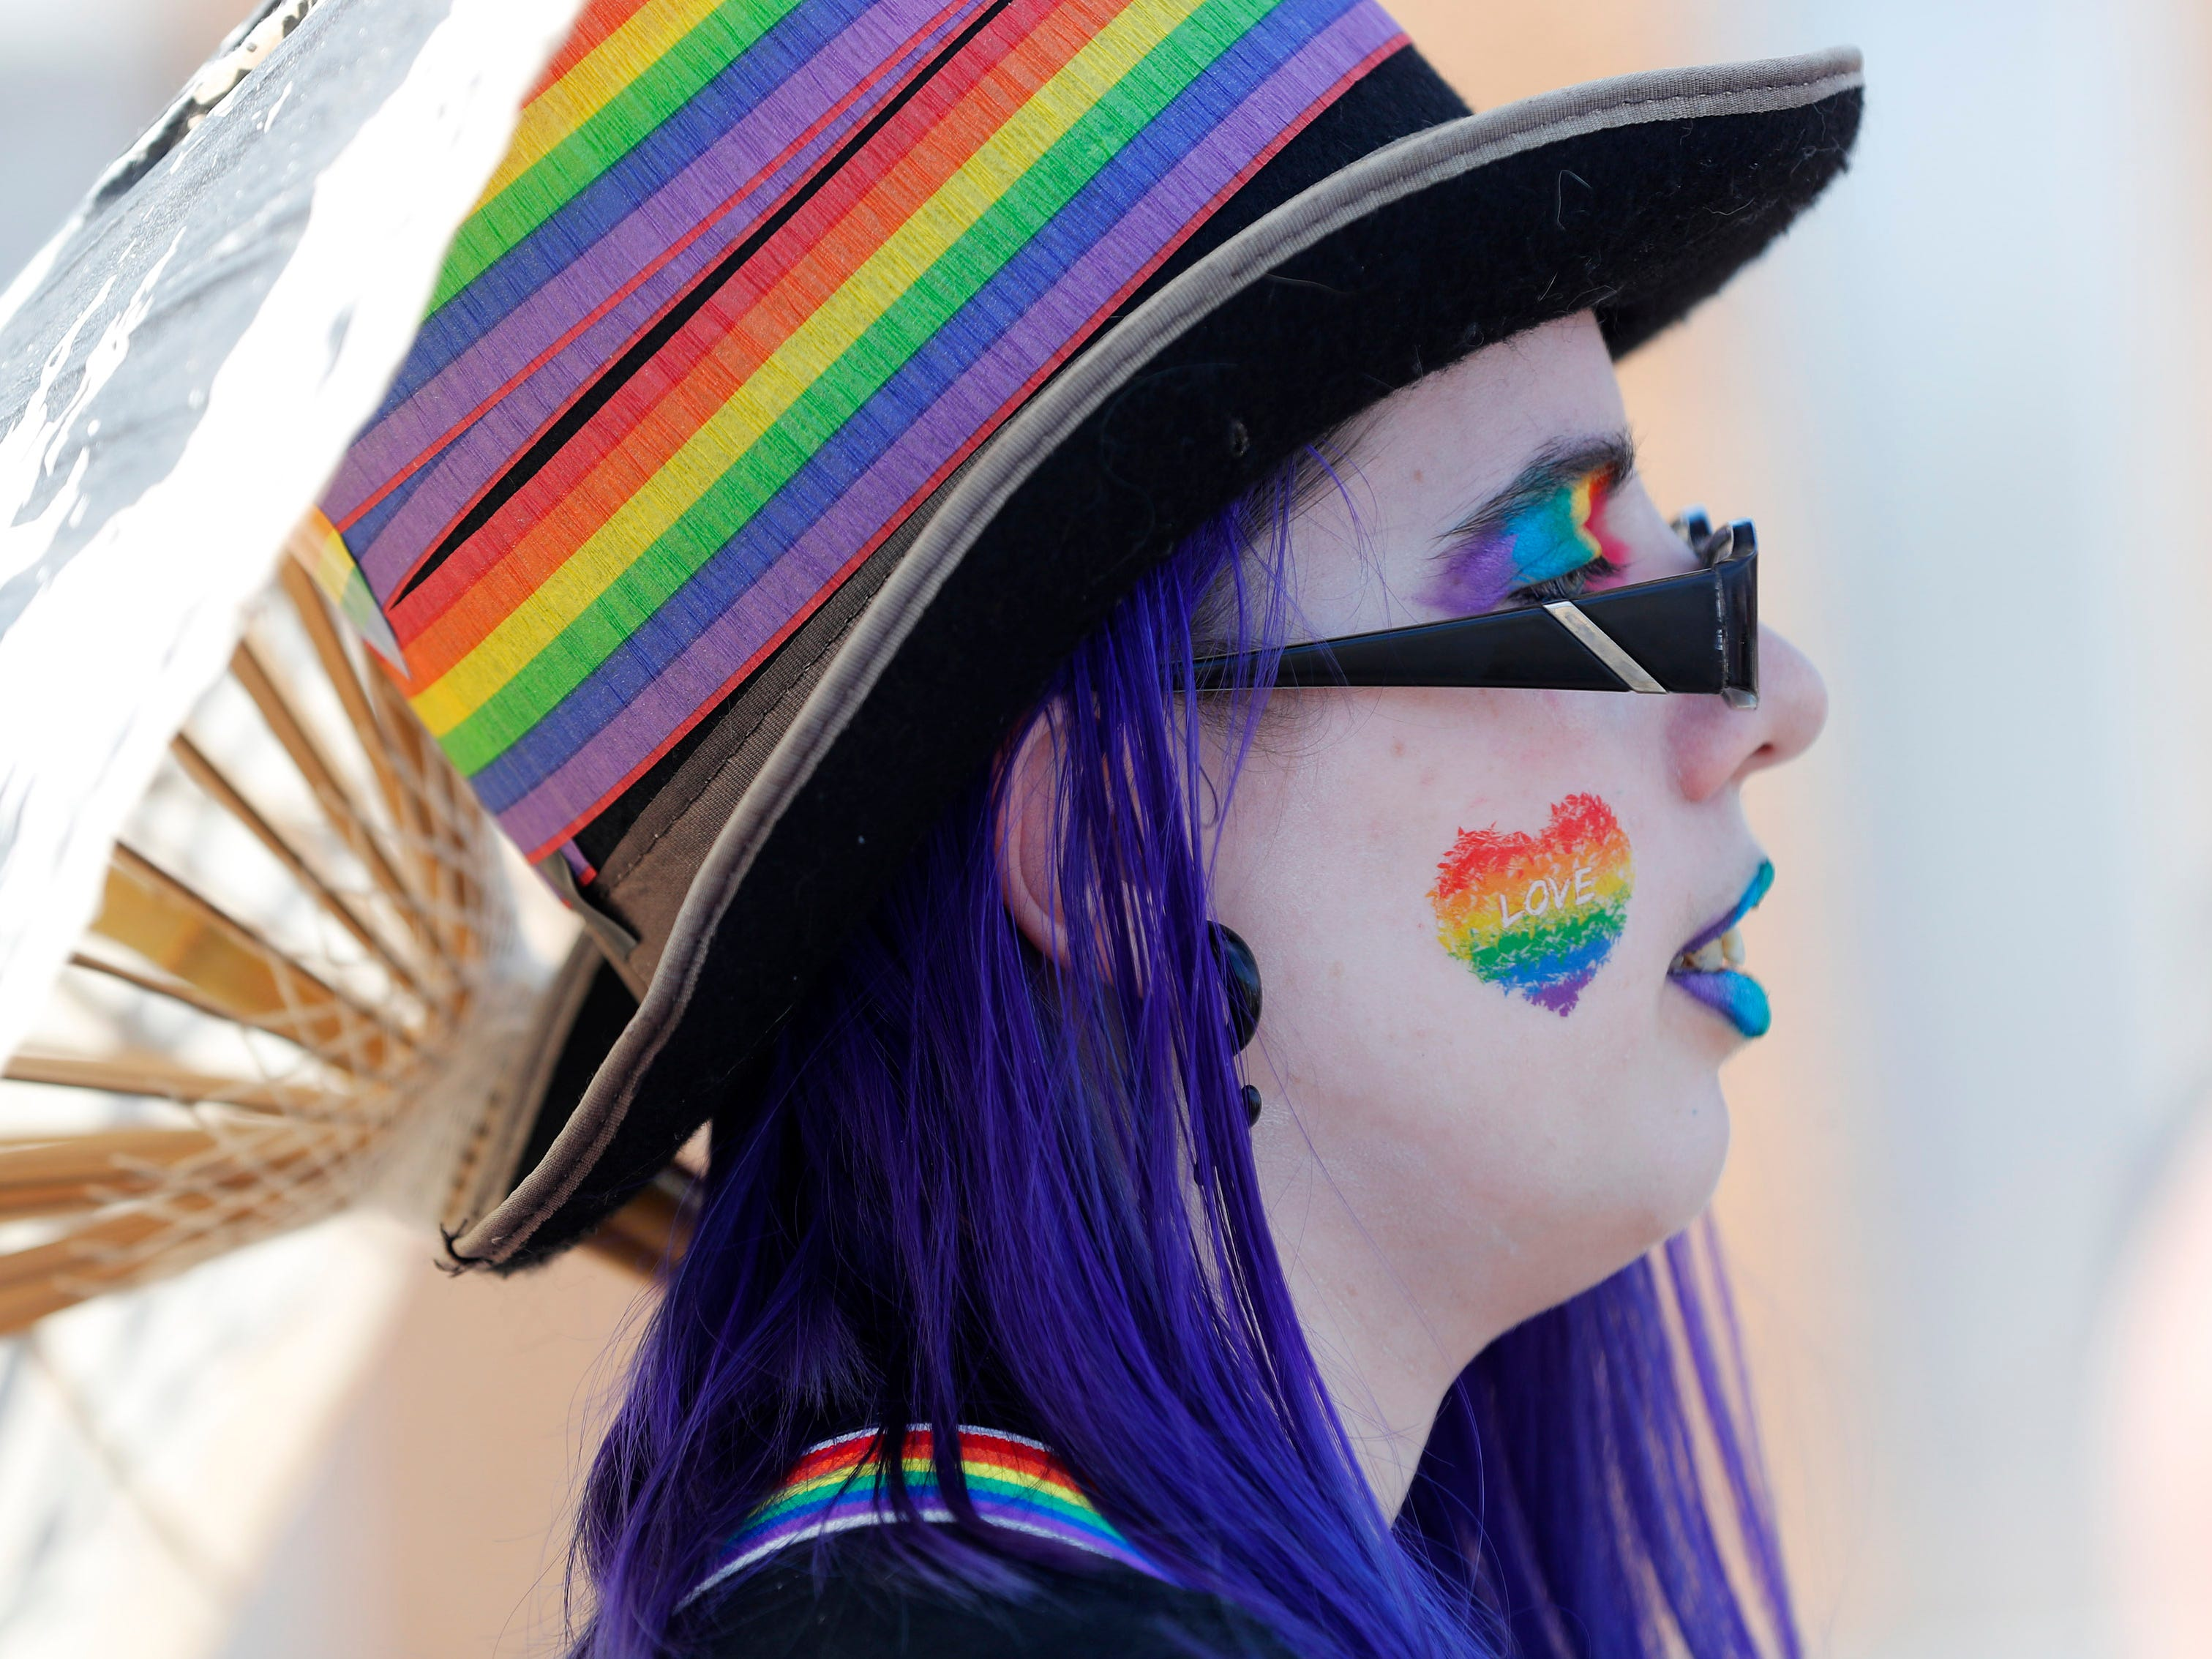 Megan Olson marches with SCNM during the Phoenix Pride Parade on April 7, 2019.